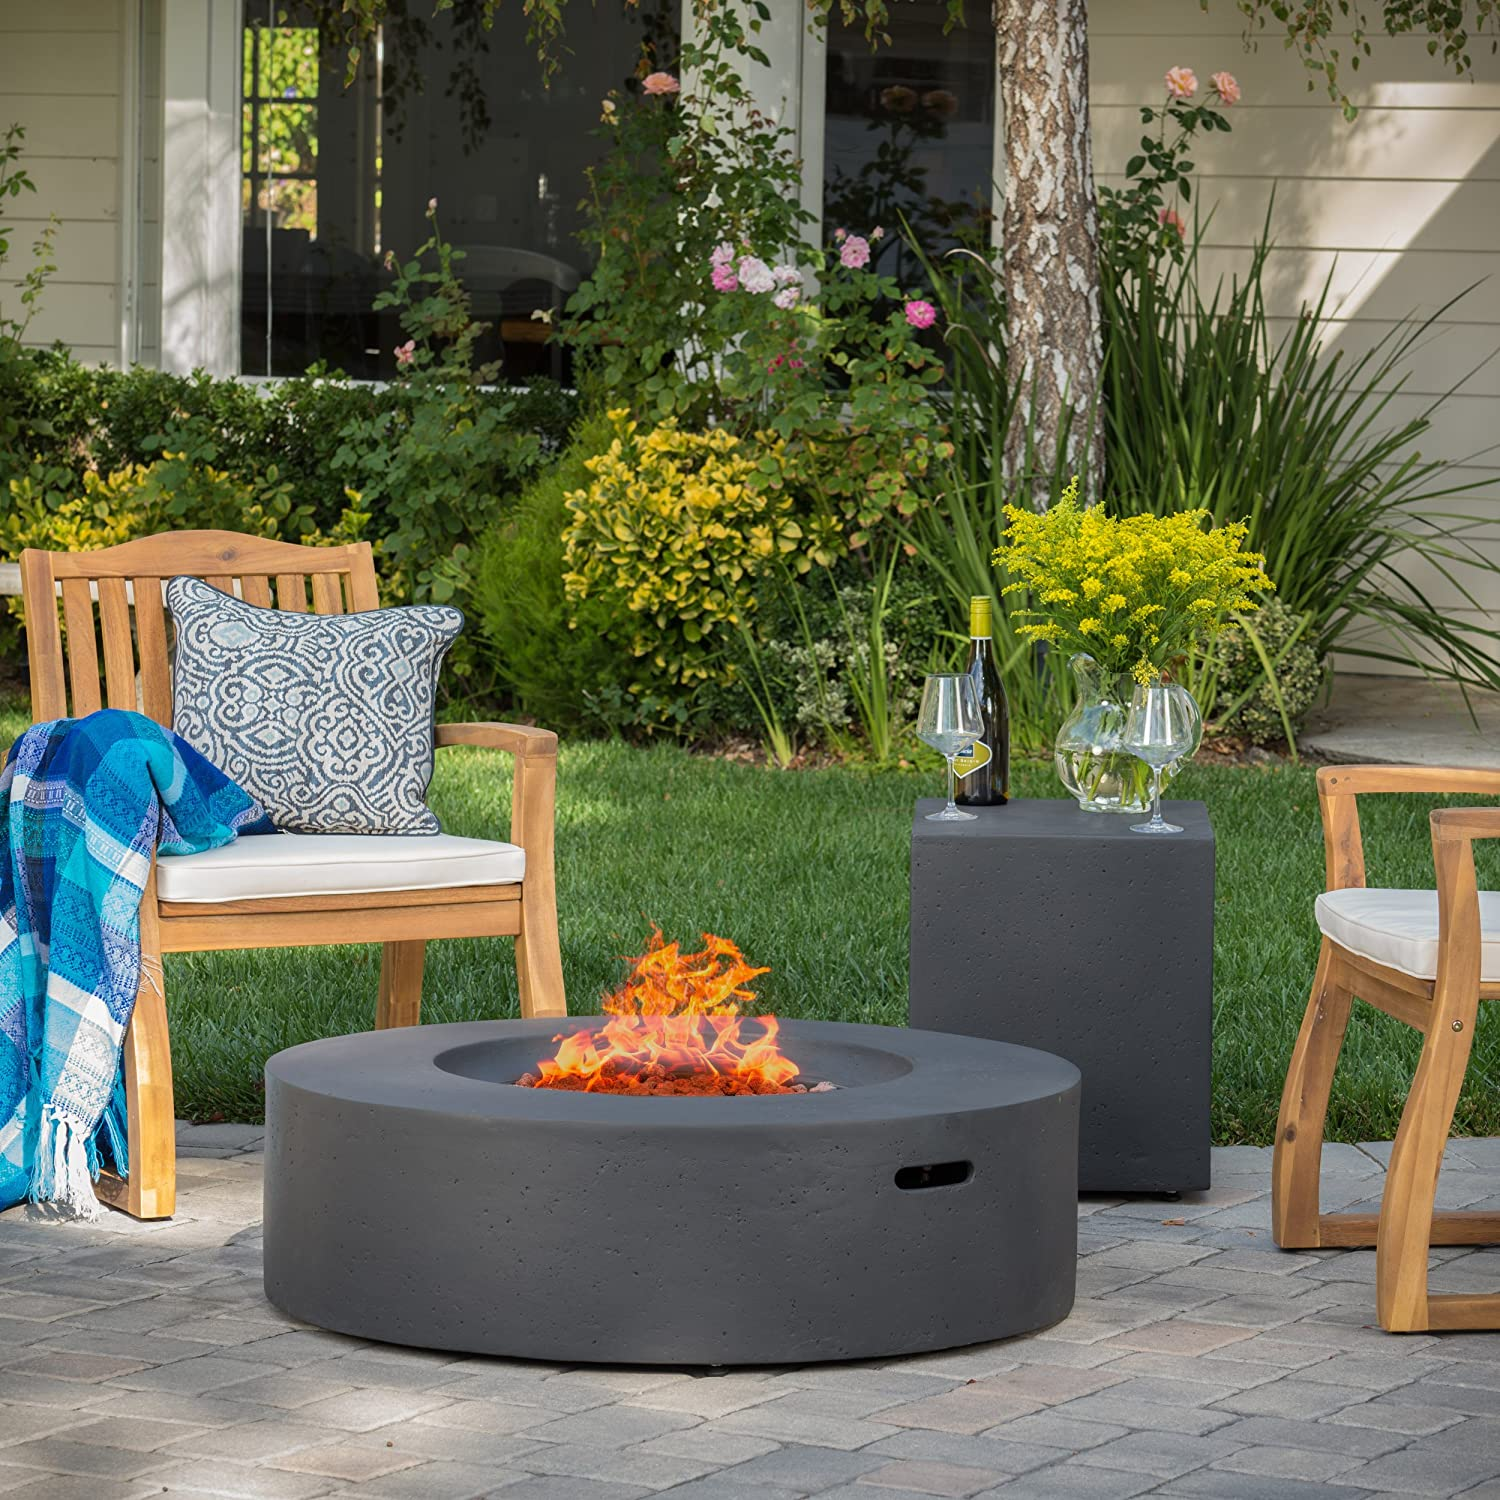 Amazon.com : Hearth 50K BTU Outdoor Gas Fire Pit Table with Tank Holder  (Circular, Dark Grey) : Garden & Outdoor - Amazon.com : Hearth 50K BTU Outdoor Gas Fire Pit Table With Tank